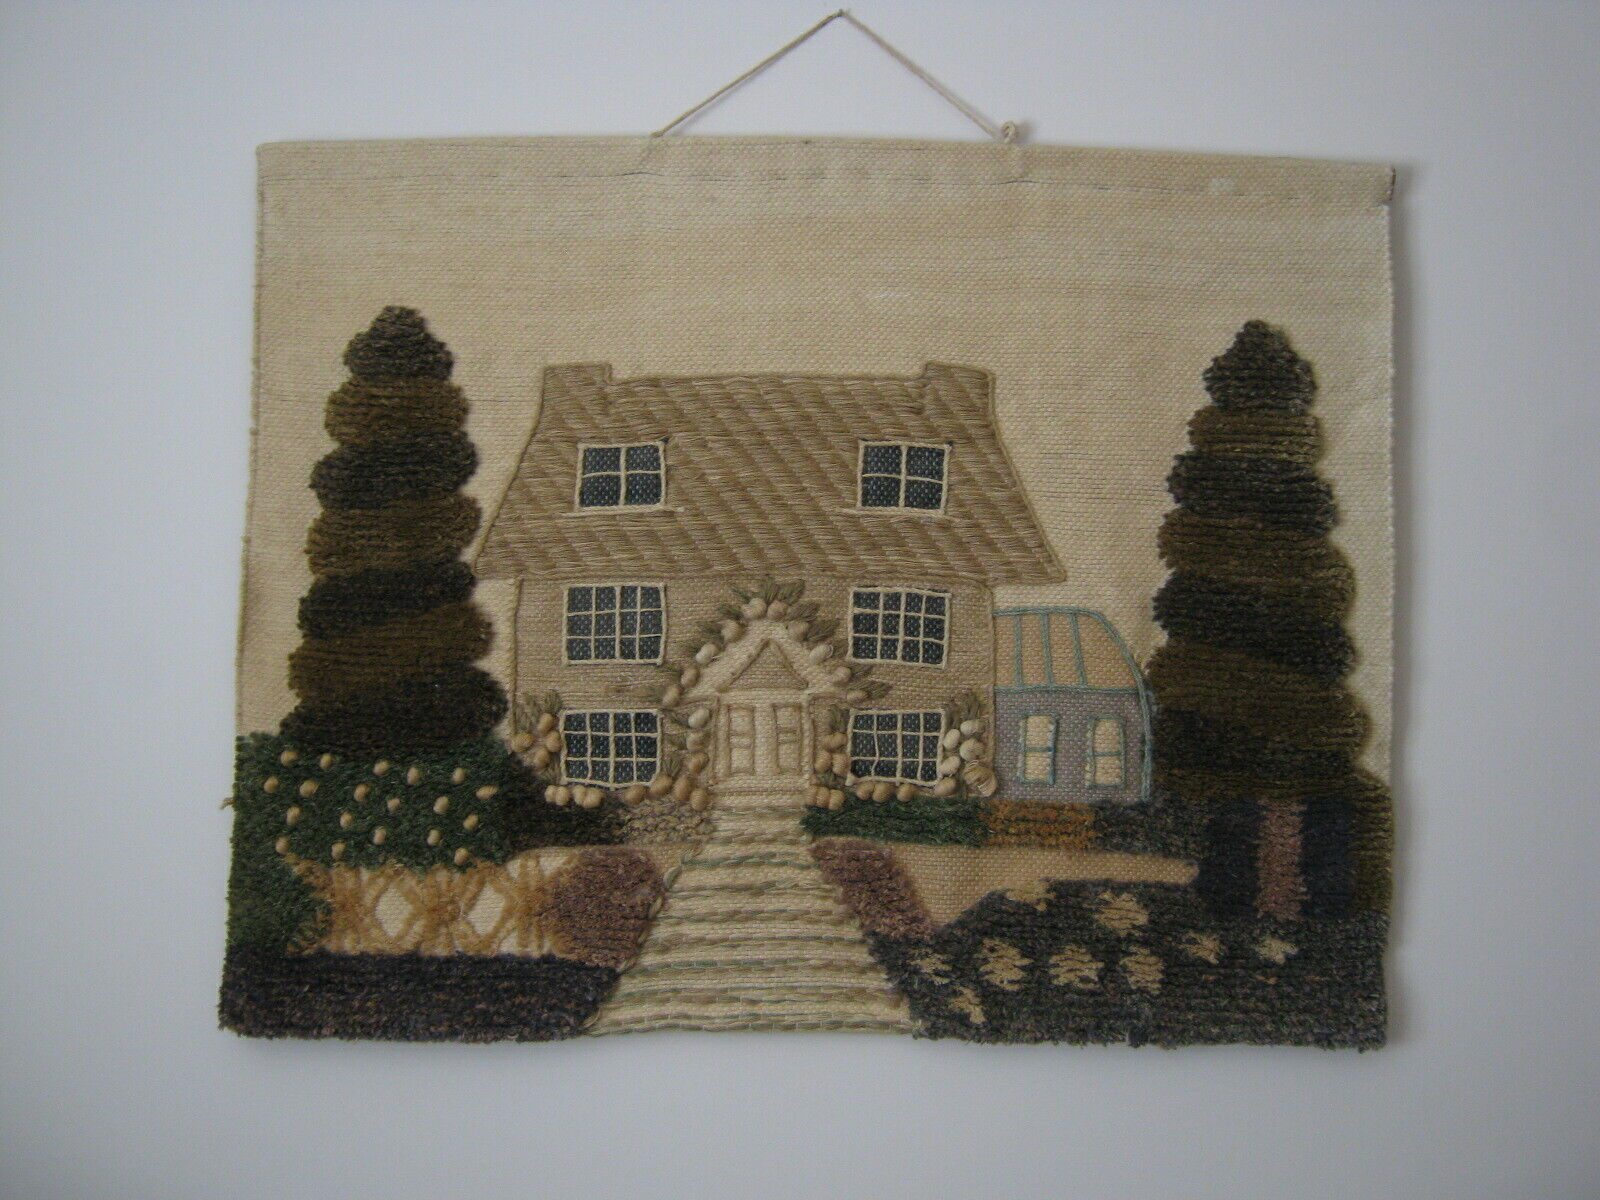 Needlework Rustic Country House 3D Wall Art Hanging